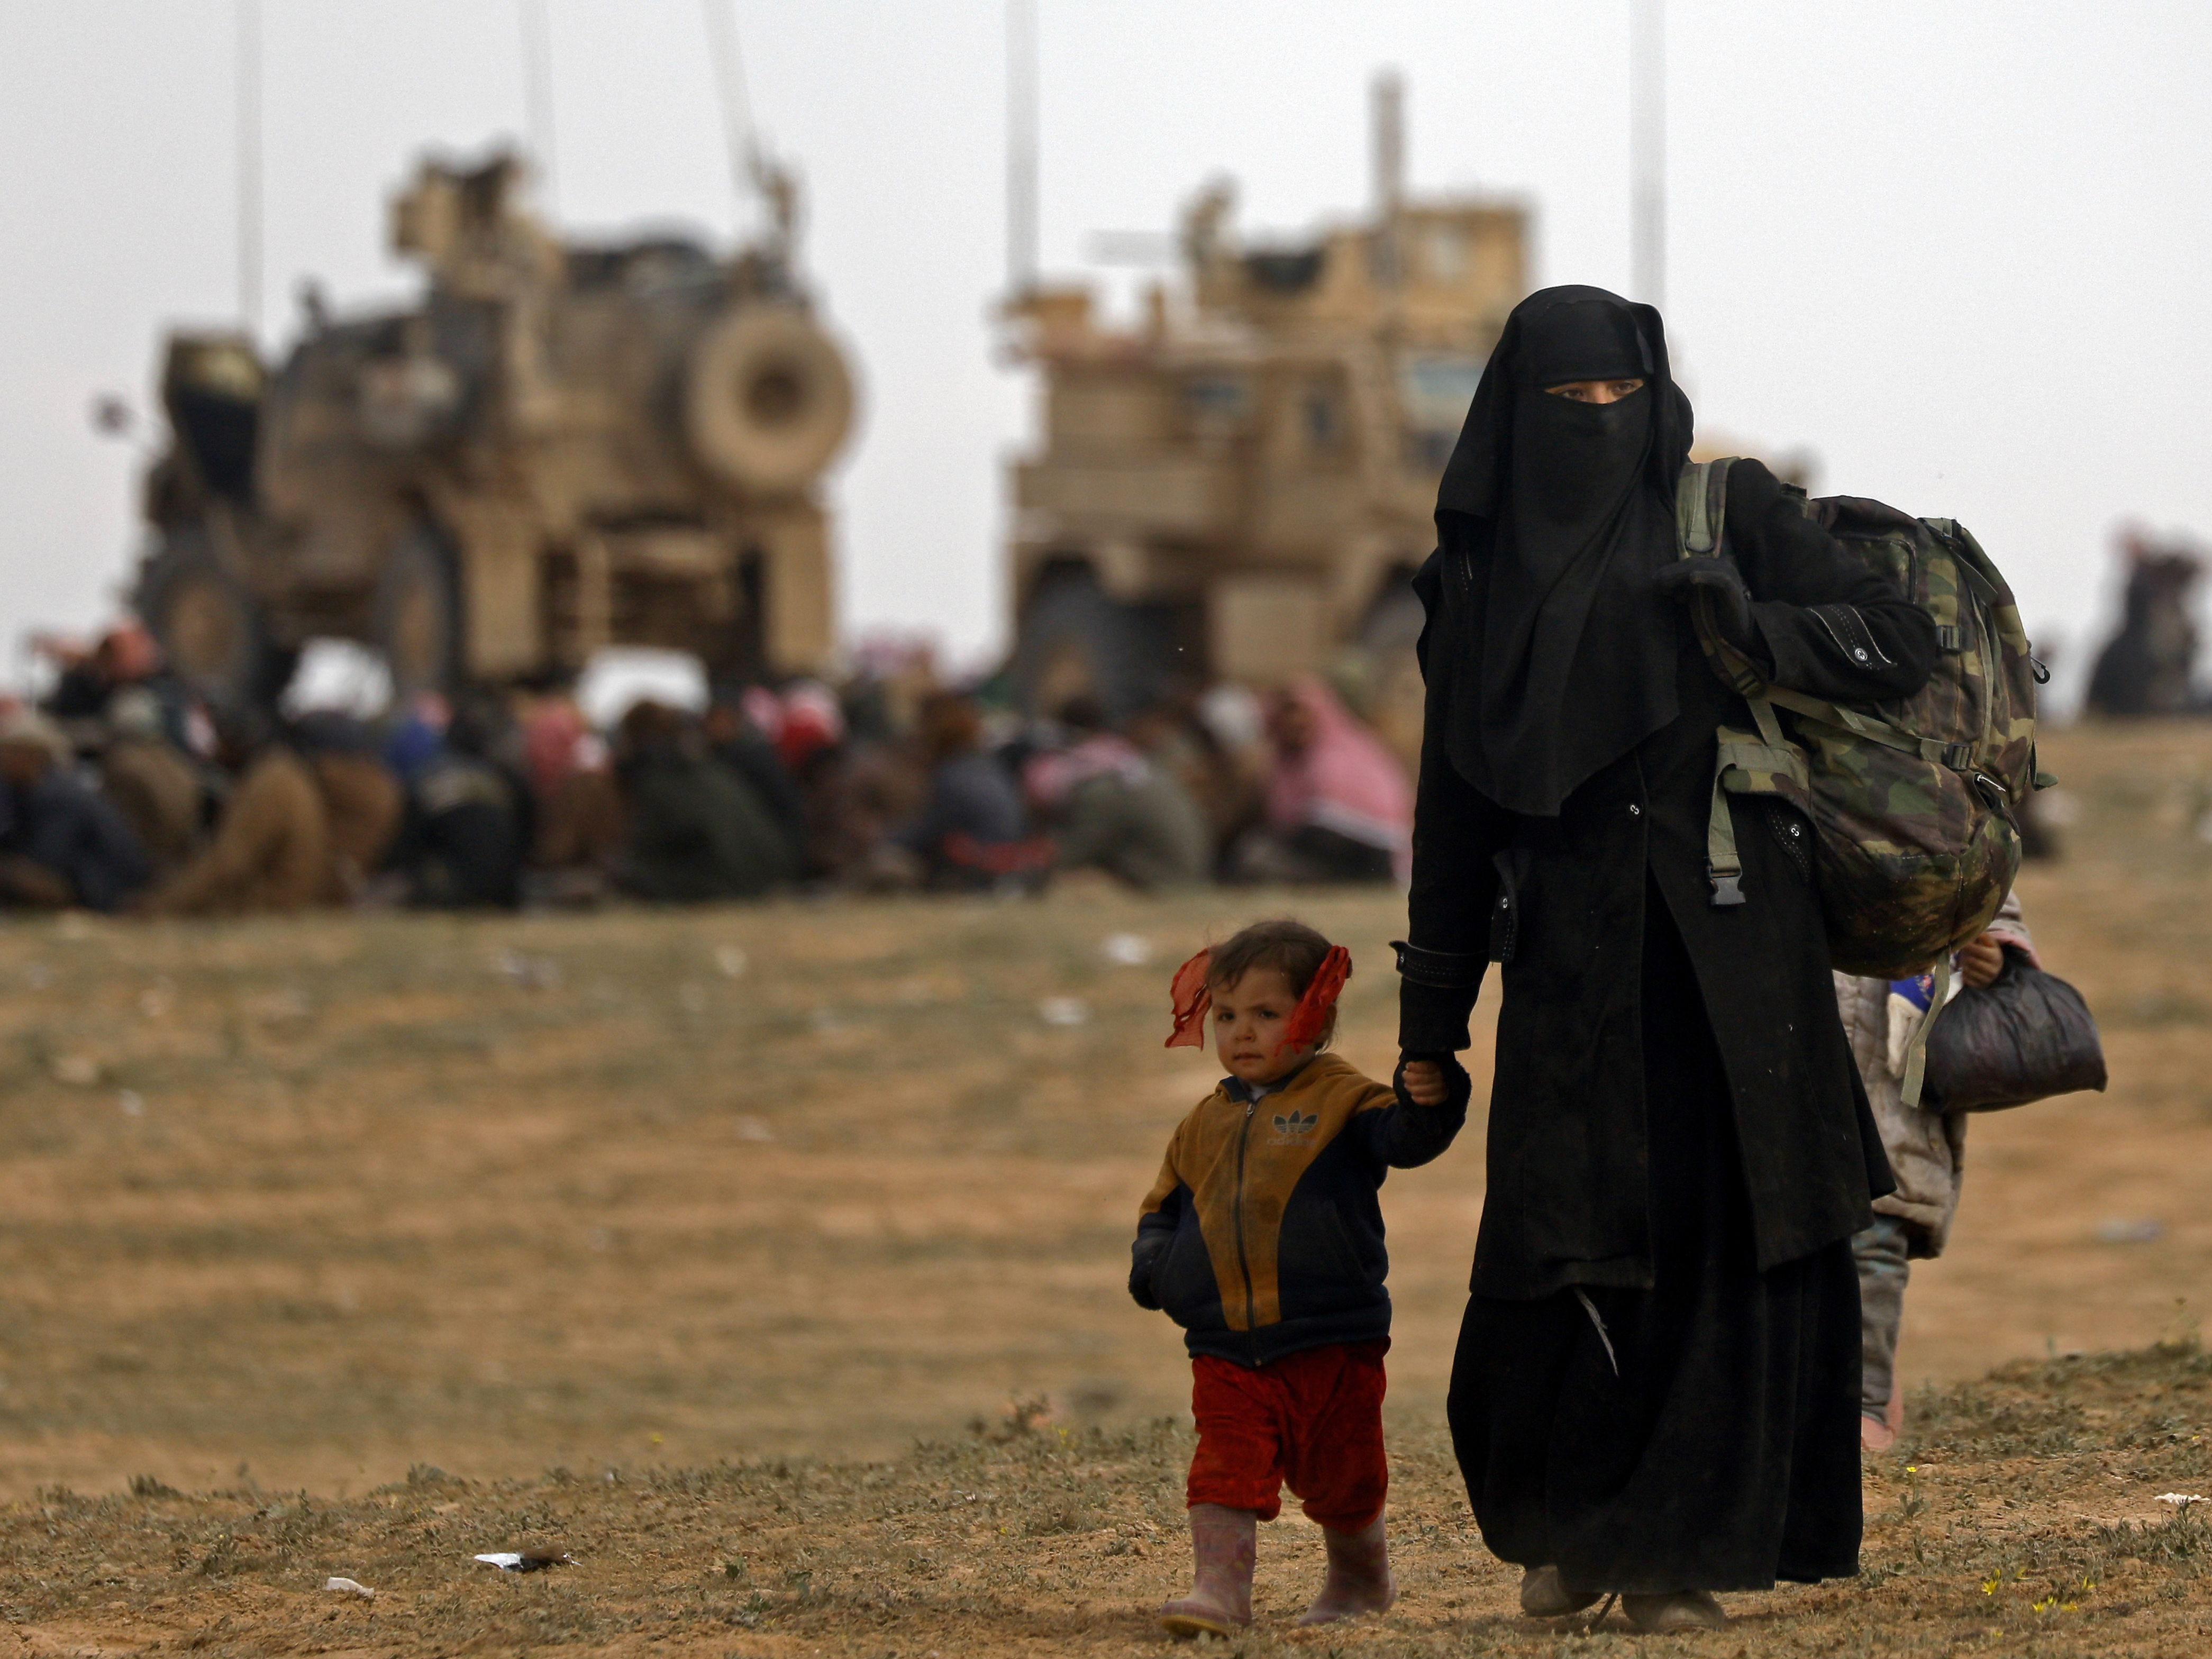 """Civilians fleeing the Islamic State's group embattled holdout of Baghouz walk in a field on Feb. 13, 2019 during an operation by the US-backed Syrian Democratic Forces (SDF) to expel the Islamic State group from the area, in the eastern Syrian province of Deir Ezzor. Syrian fighters backed by artillery fire from a US-led coalition battled a fierce jihadist counteroffensive as they pushed to retake a last morsel of territory from the Islamic State group in an assault lasting days. More than four years after the extremists declared a """"caliphate"""" across large parts of Syria and neighboring Iraq, several offensives have whittled that down to a tiny scrap of land in eastern Syria."""